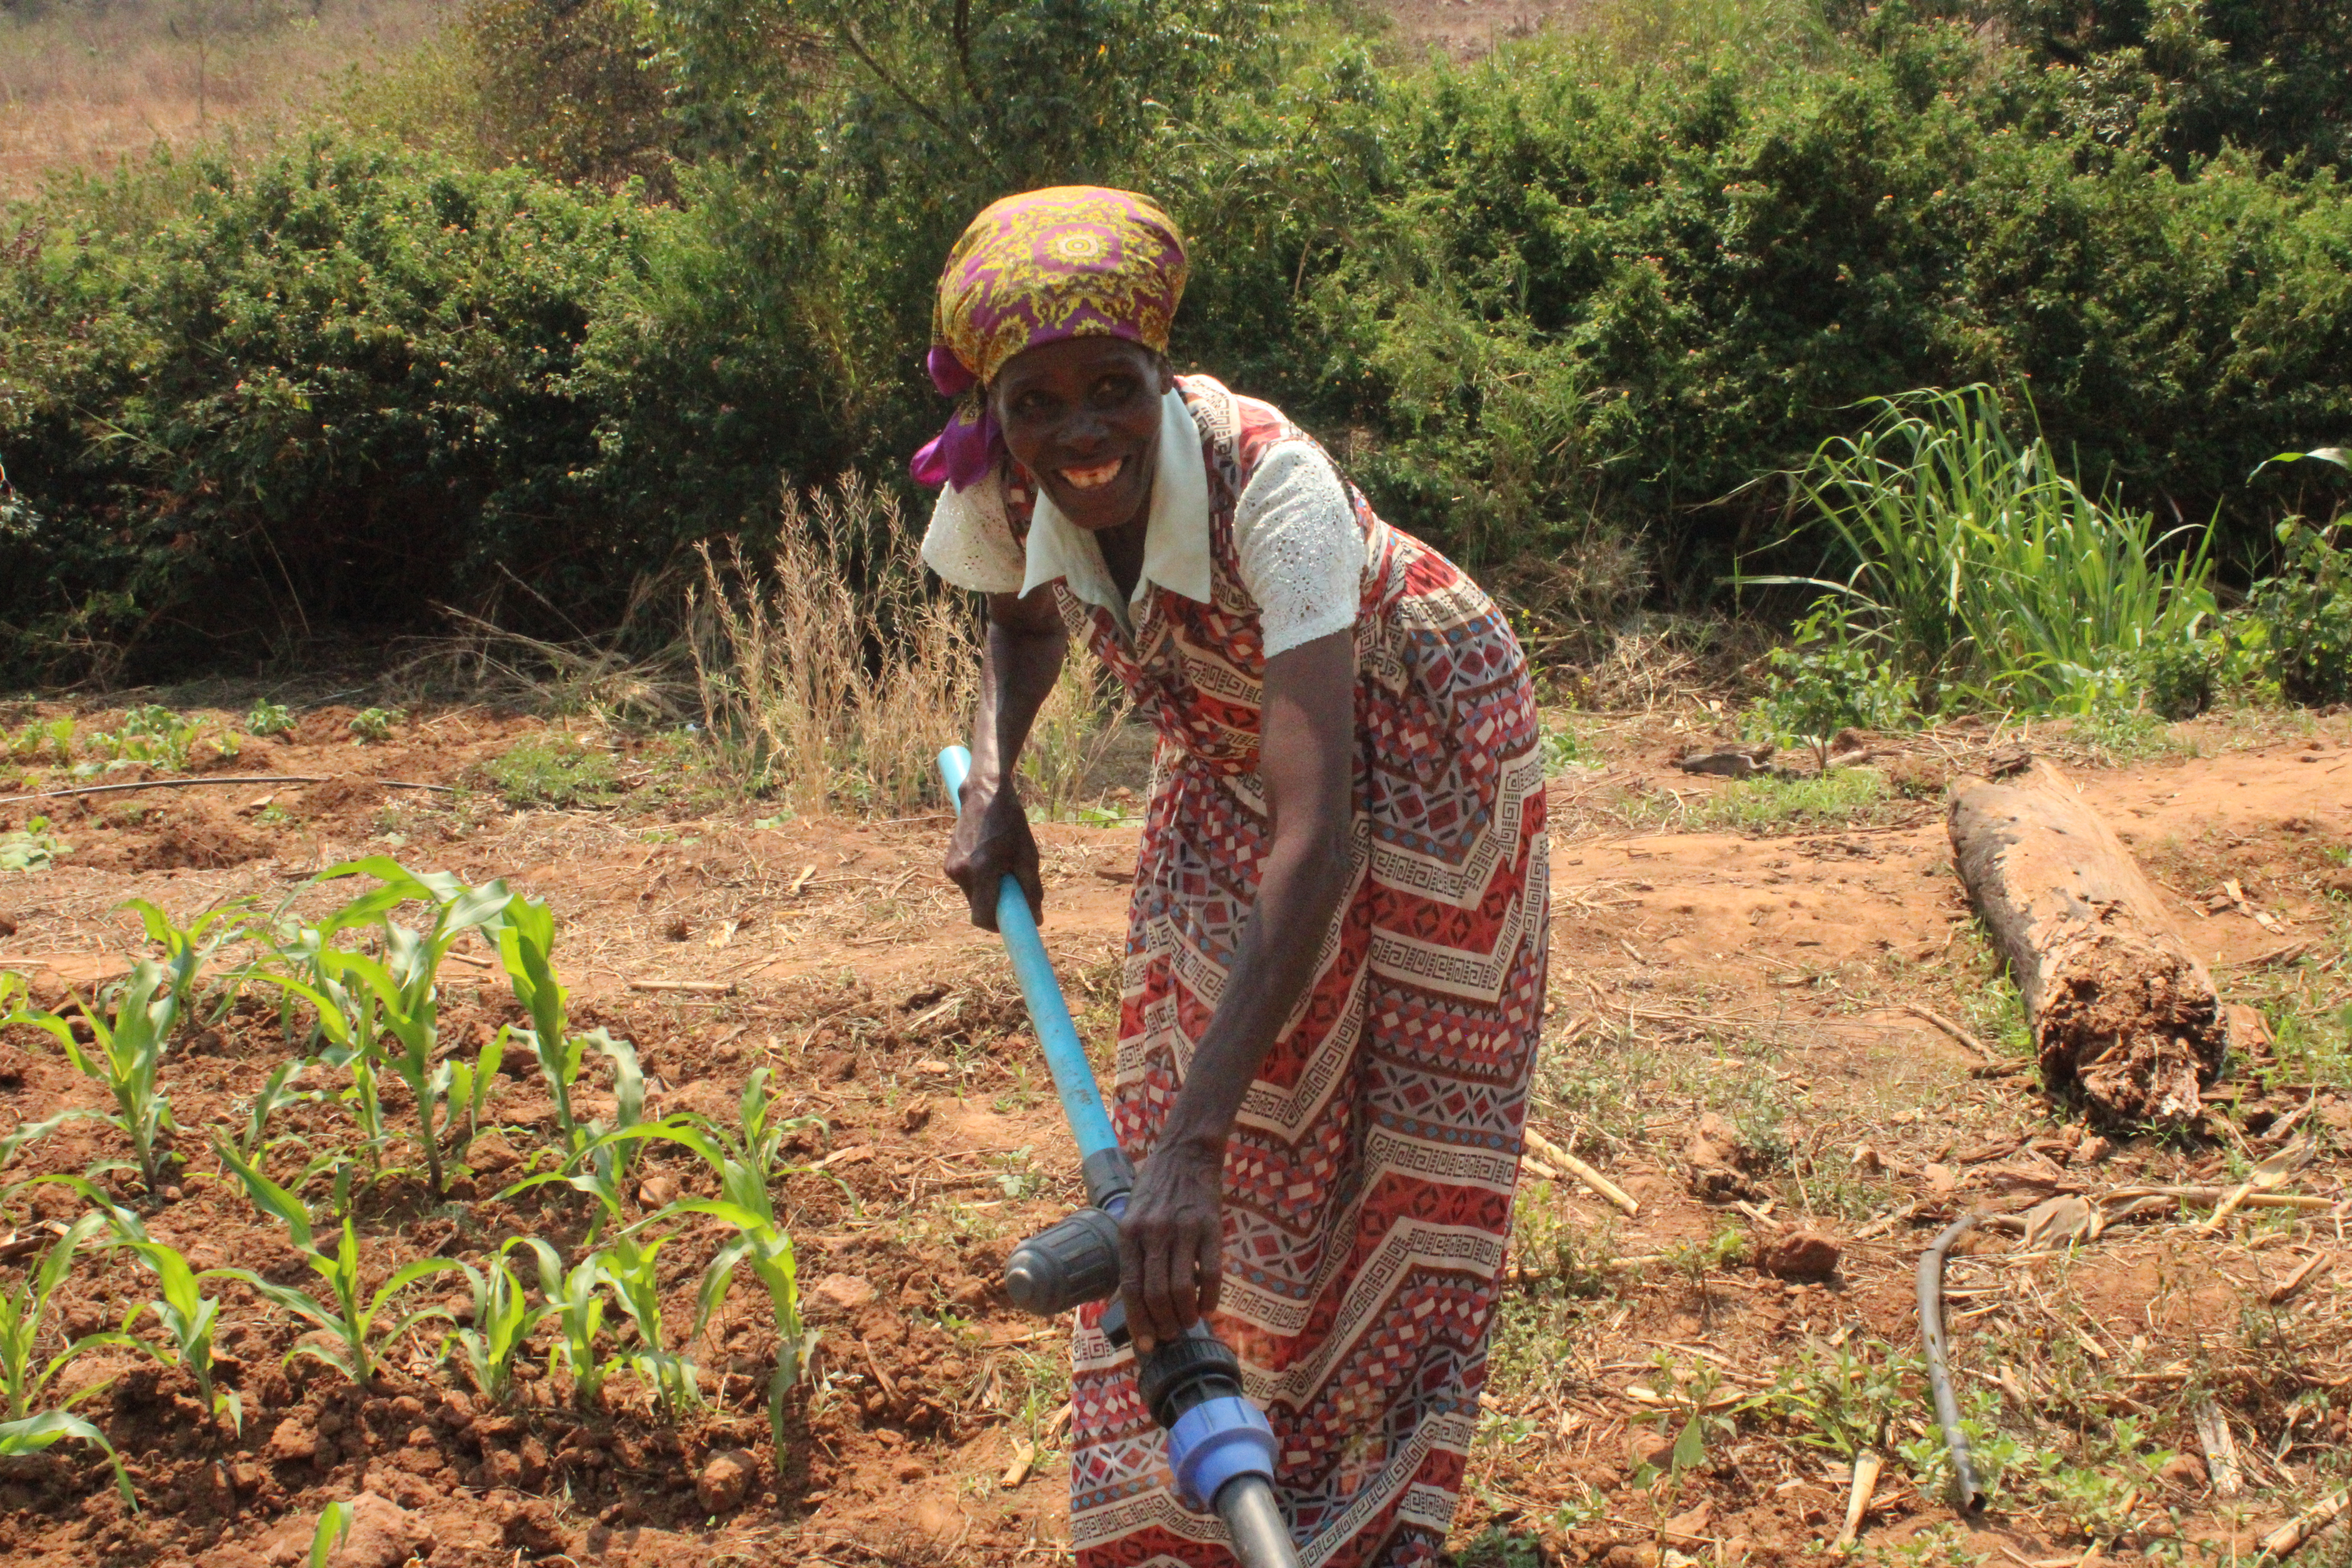 Irene Chikata, 69, operates her lightweight drip-kit on her plot in Nyanga, Zimbabwe. (Photo: Shiela Chikulo/CIMMYT)